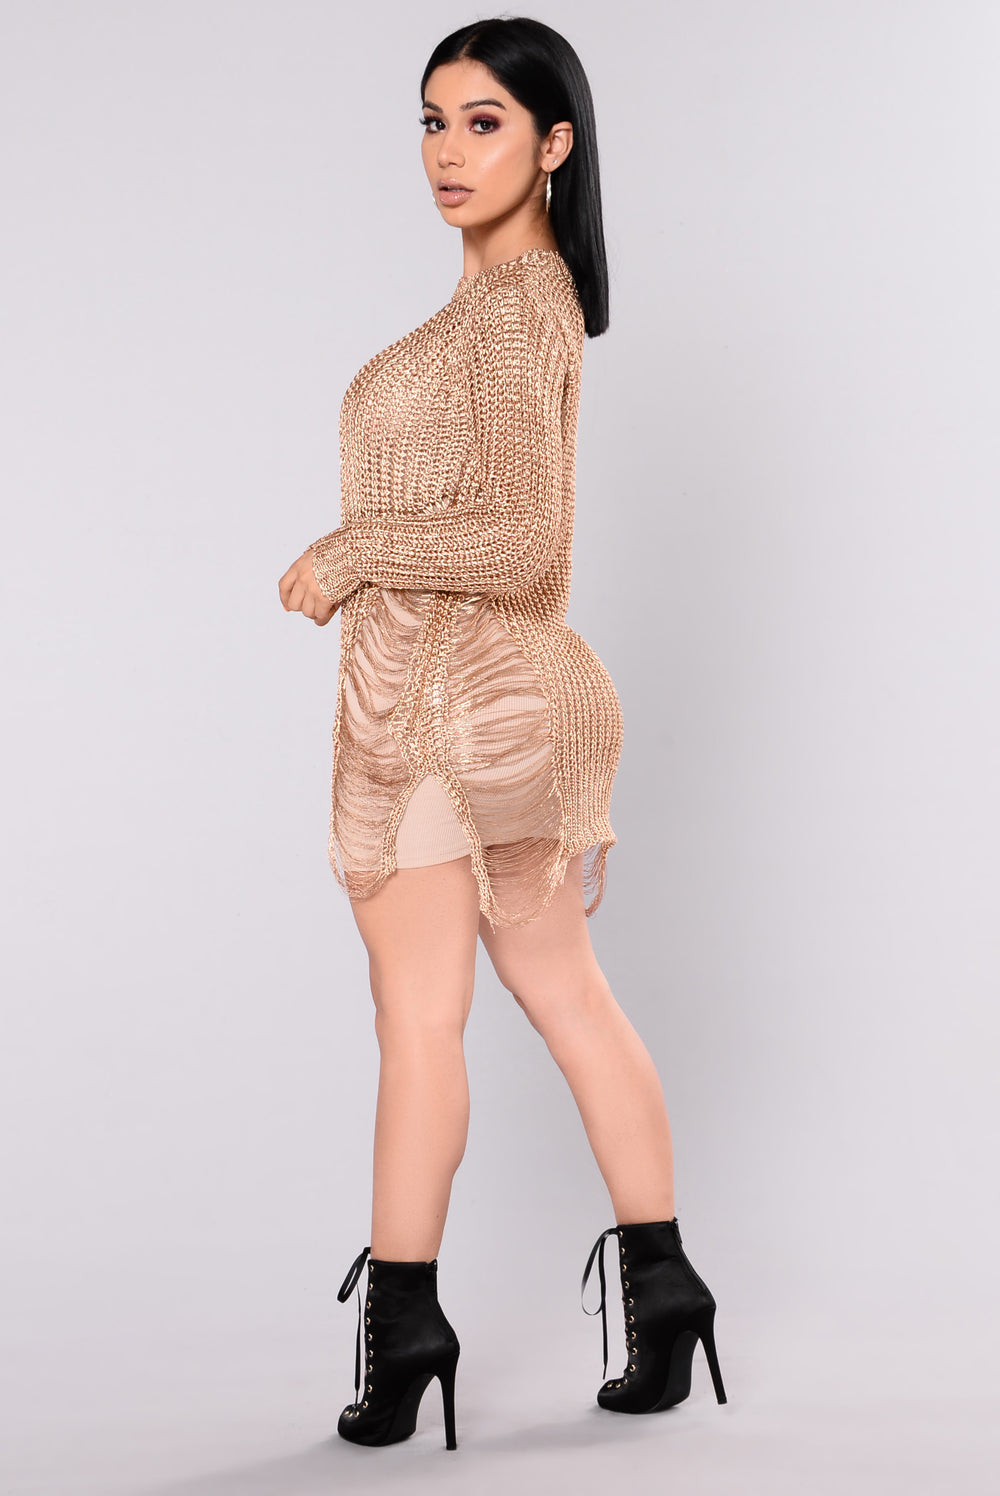 Helene Metallic Distressed Sweater - Rose Gold